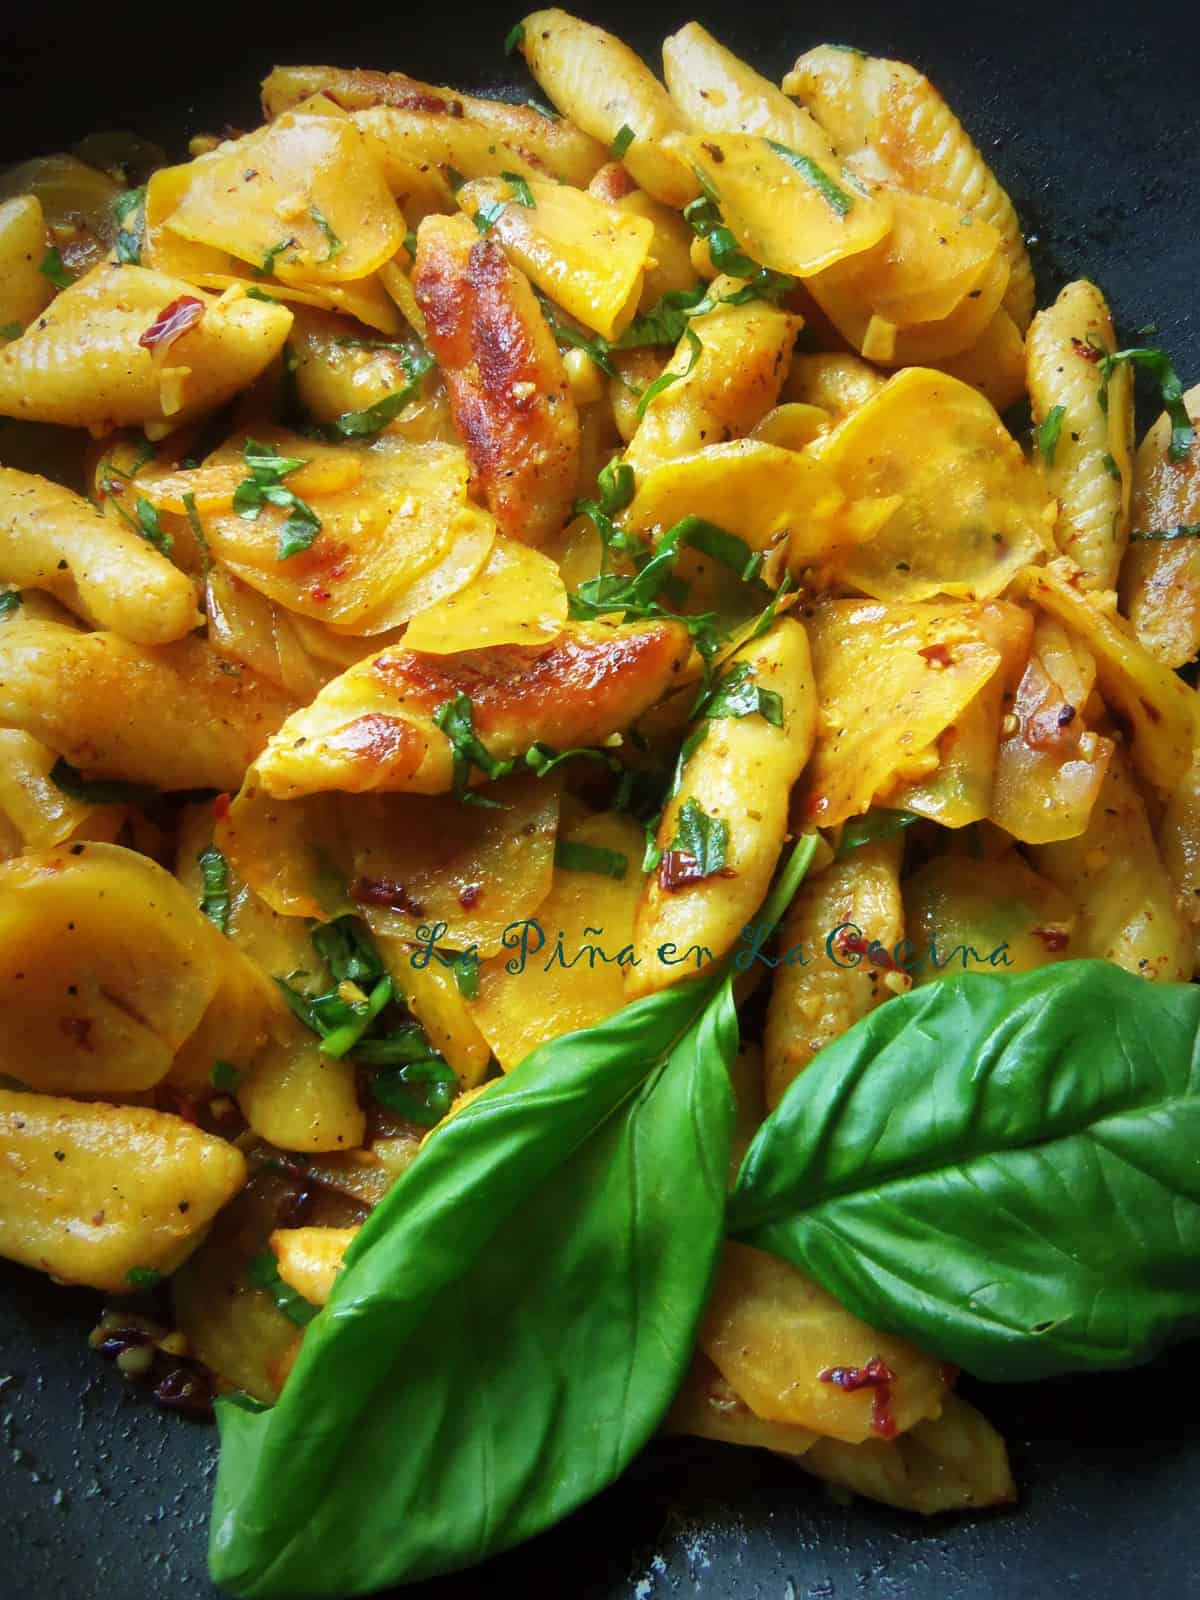 Potato Gnocchi with Golden Beets and Chipotle